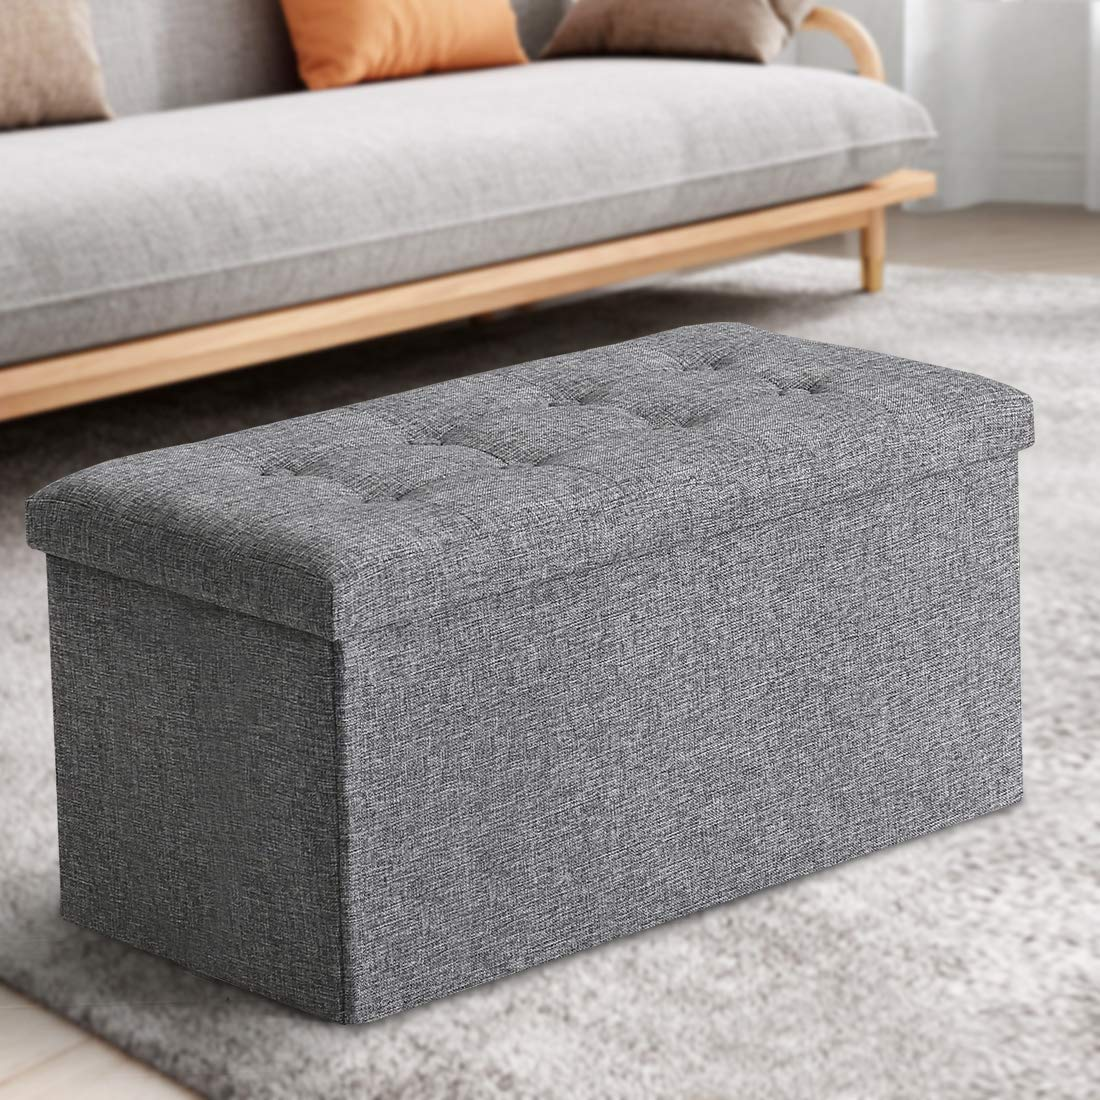 ASLIFE Multifunctional and Folding Storage Ottoman Top Linen Fabric Footrest Coffee Table, Toy Box Chest for Bedroom and Living Room LIGHT GREY,30 x 15 x15